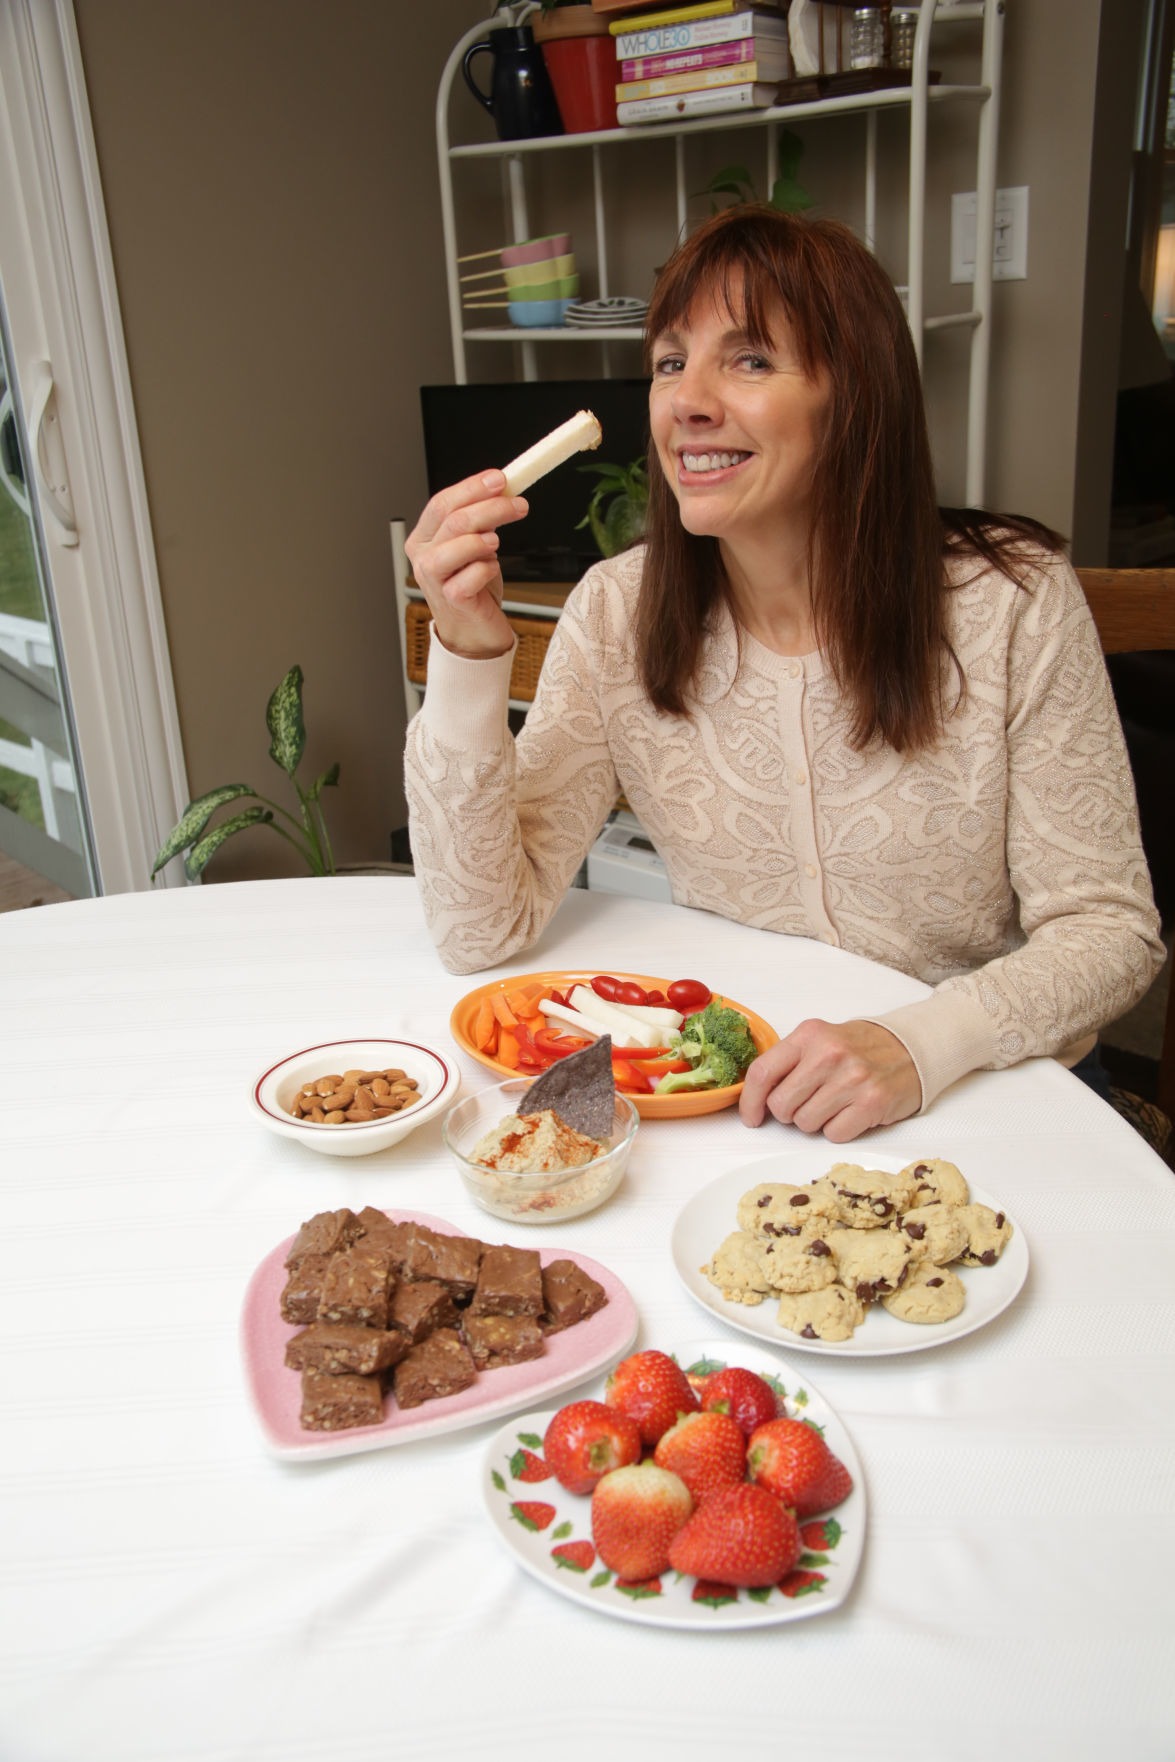 Schererville health coach: Fresh fruits and veggies, fish, good fats make healthy eating delicious